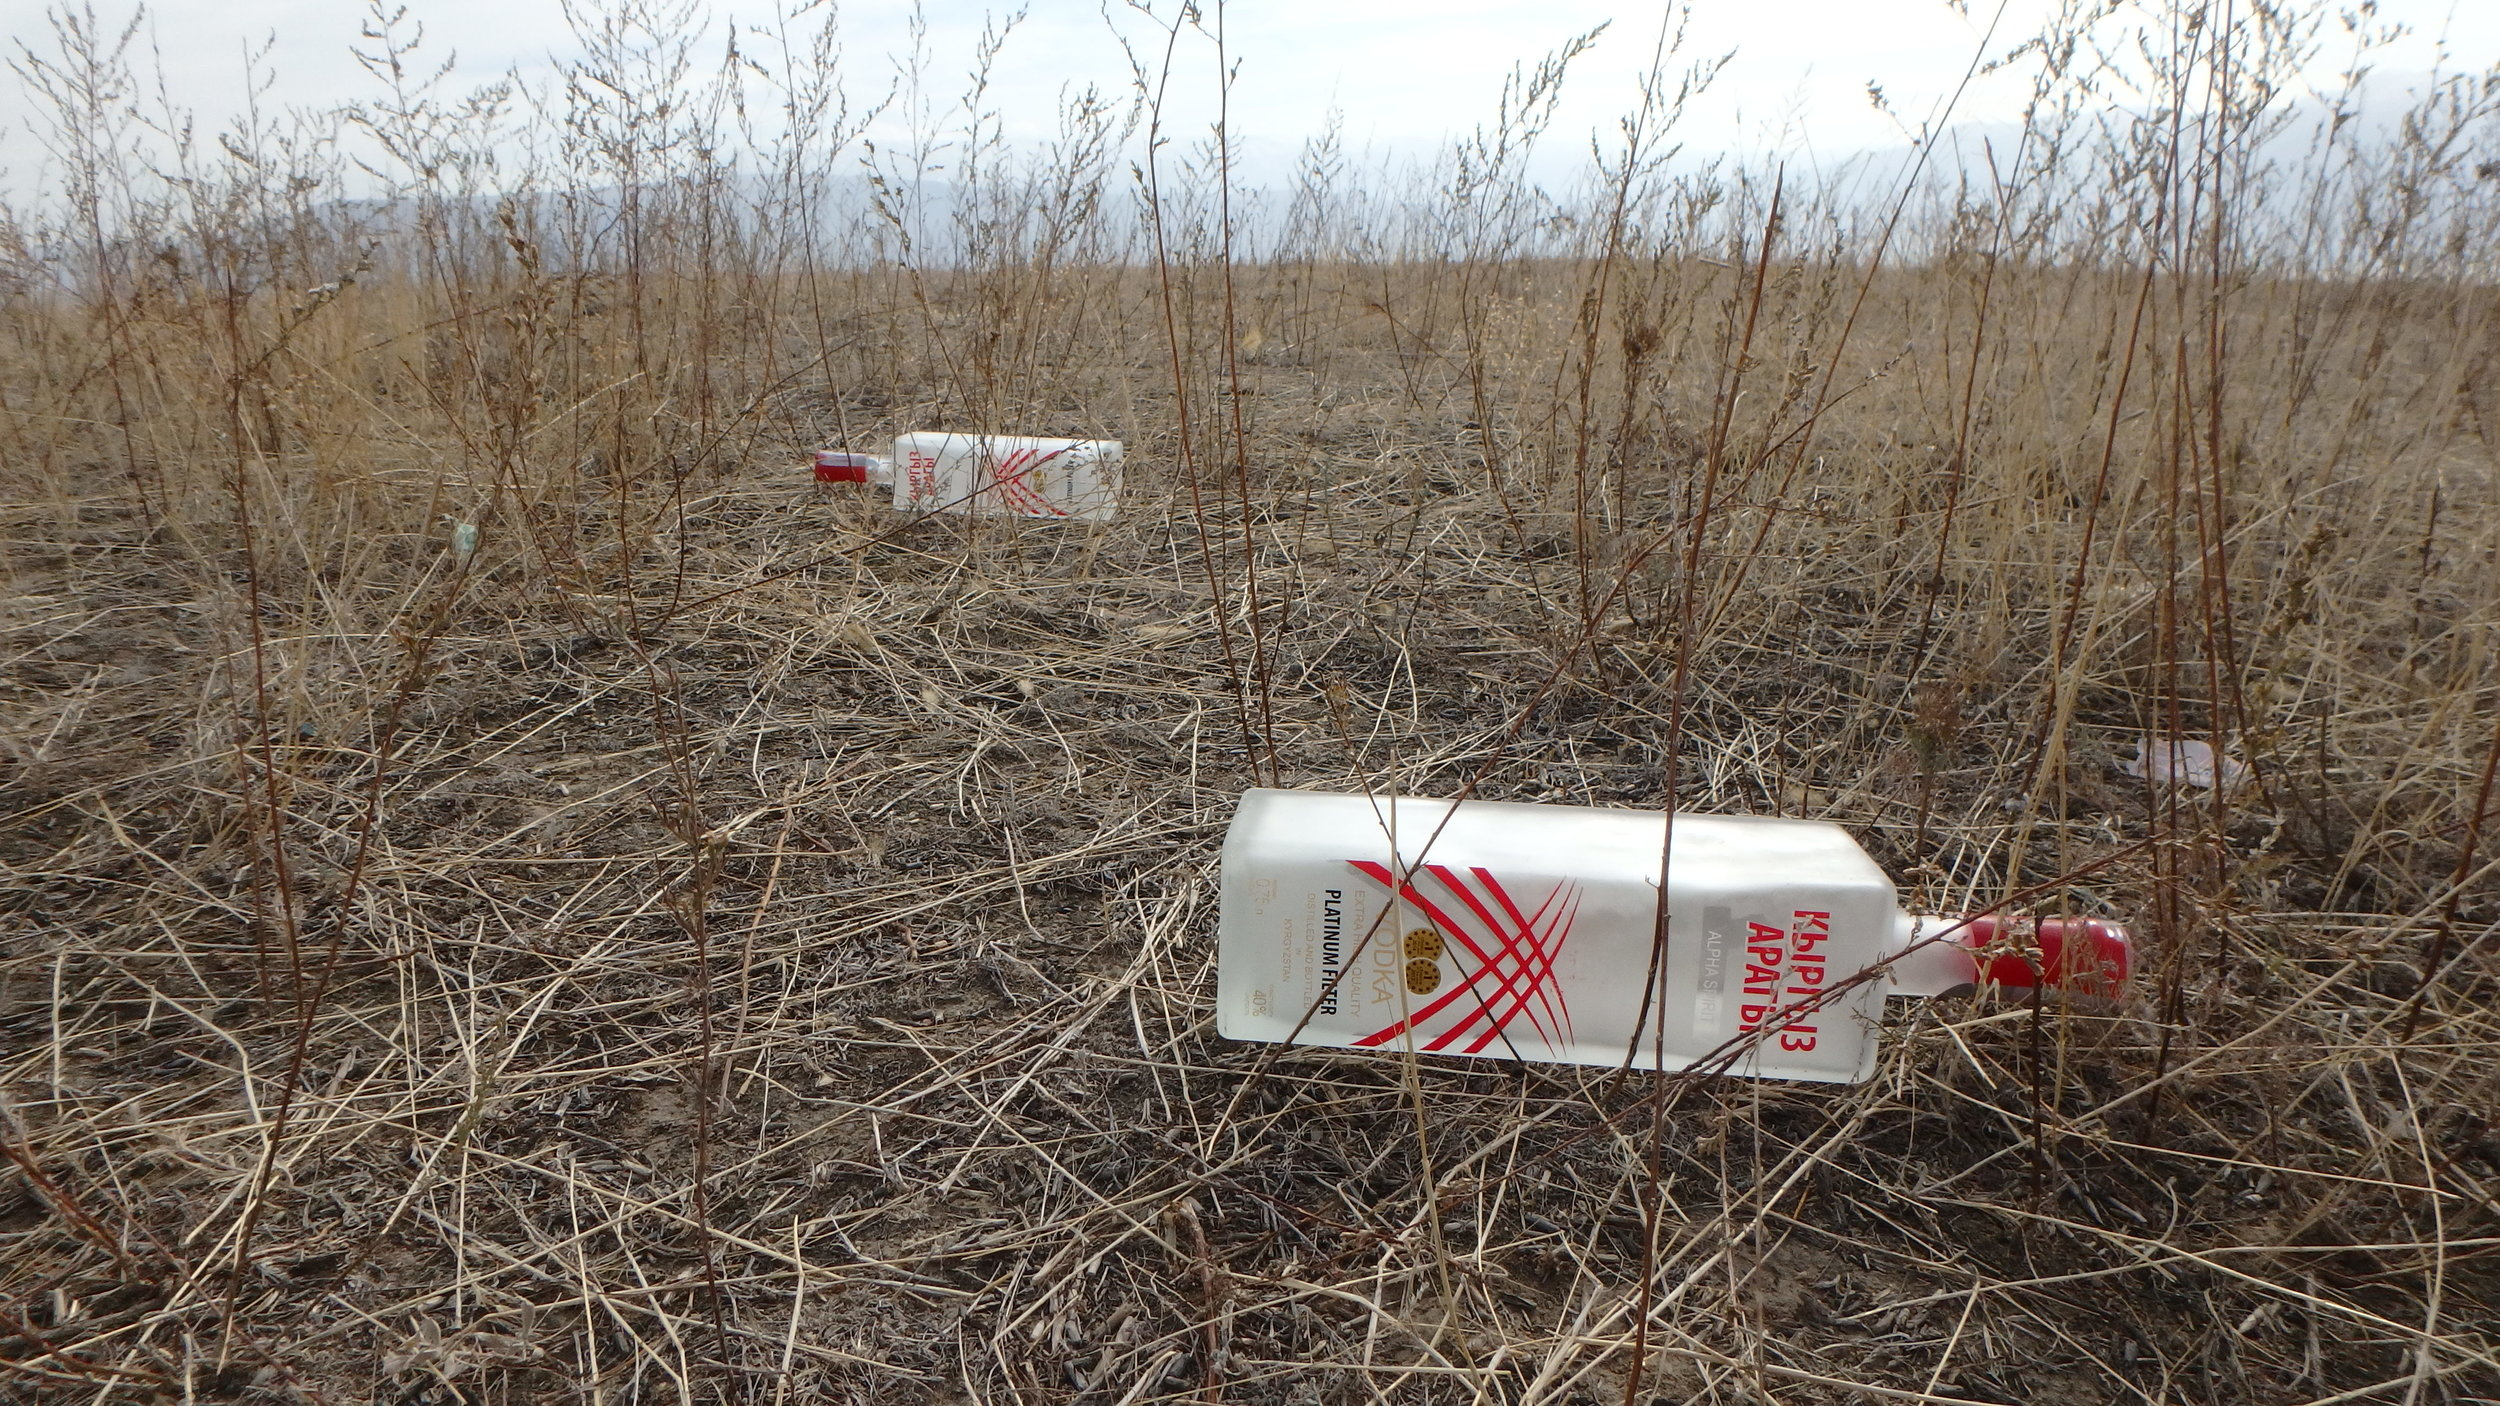 Remains of a Kyrgyz bush party - maybe left behind by the dudes in the previous photo.